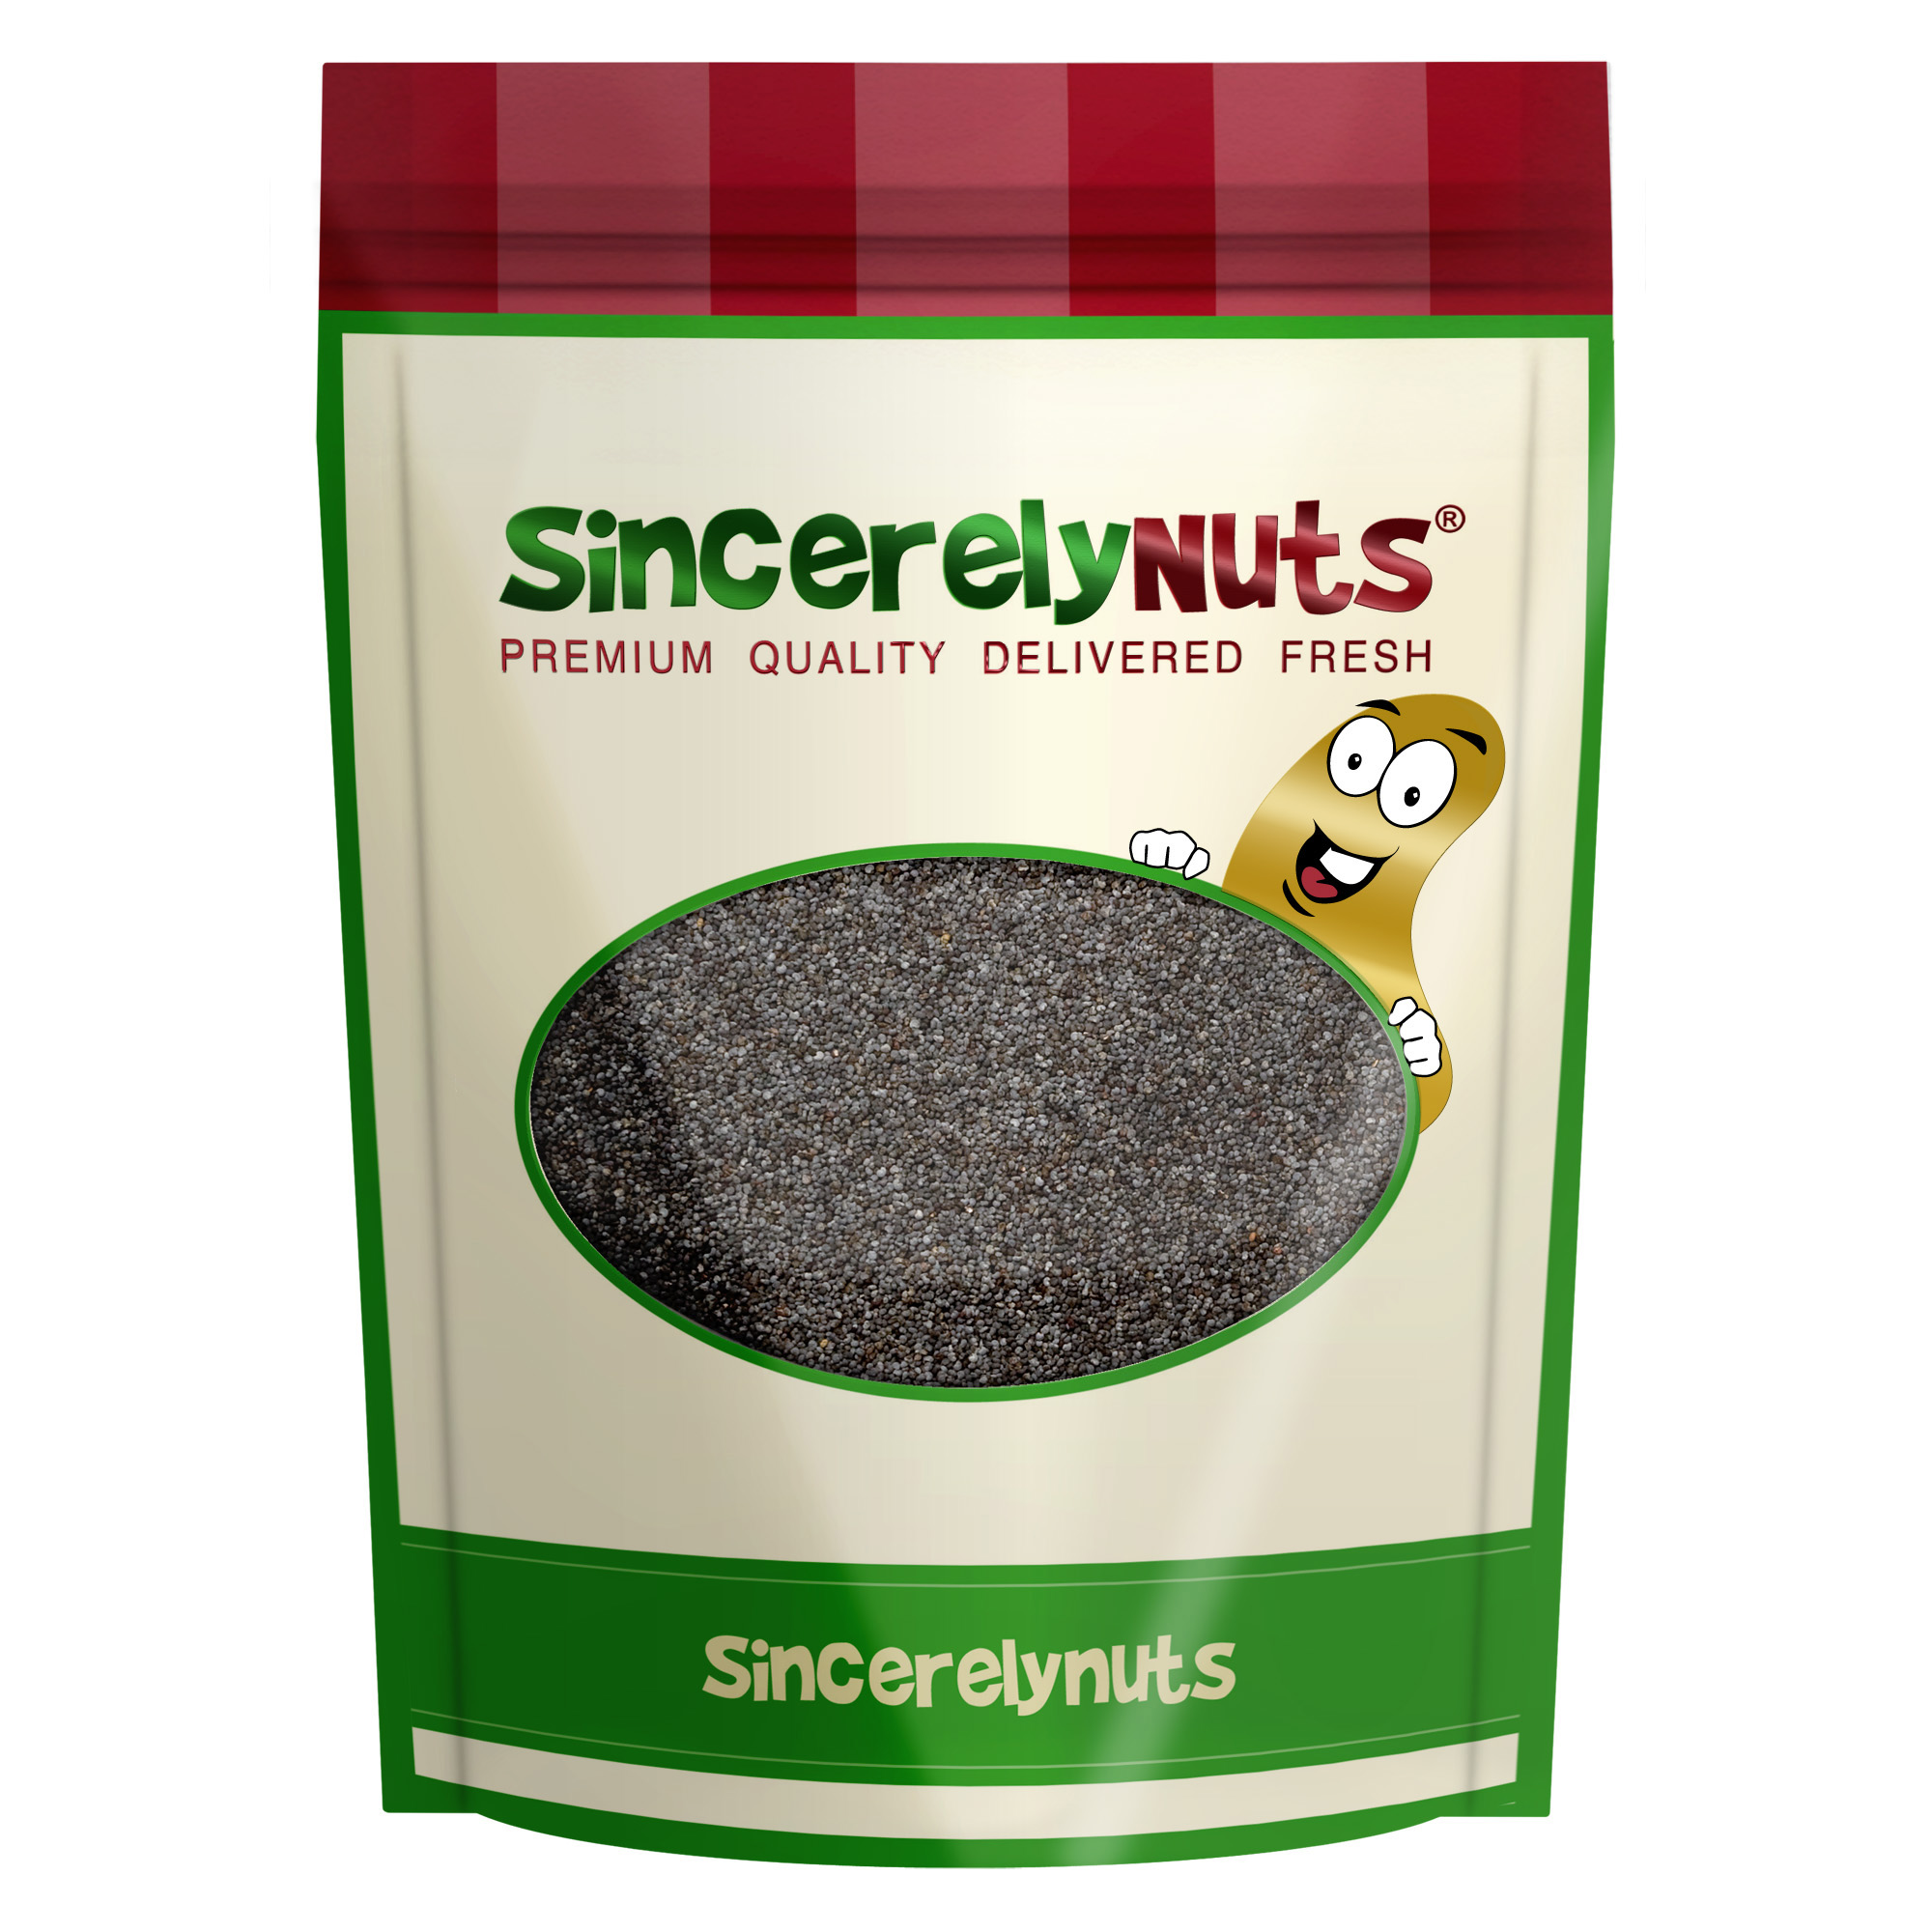 Sincerely Nuts Whole Blue Poppy Seeds (SPAIN) 5 LB Bag by Sincerely Nuts